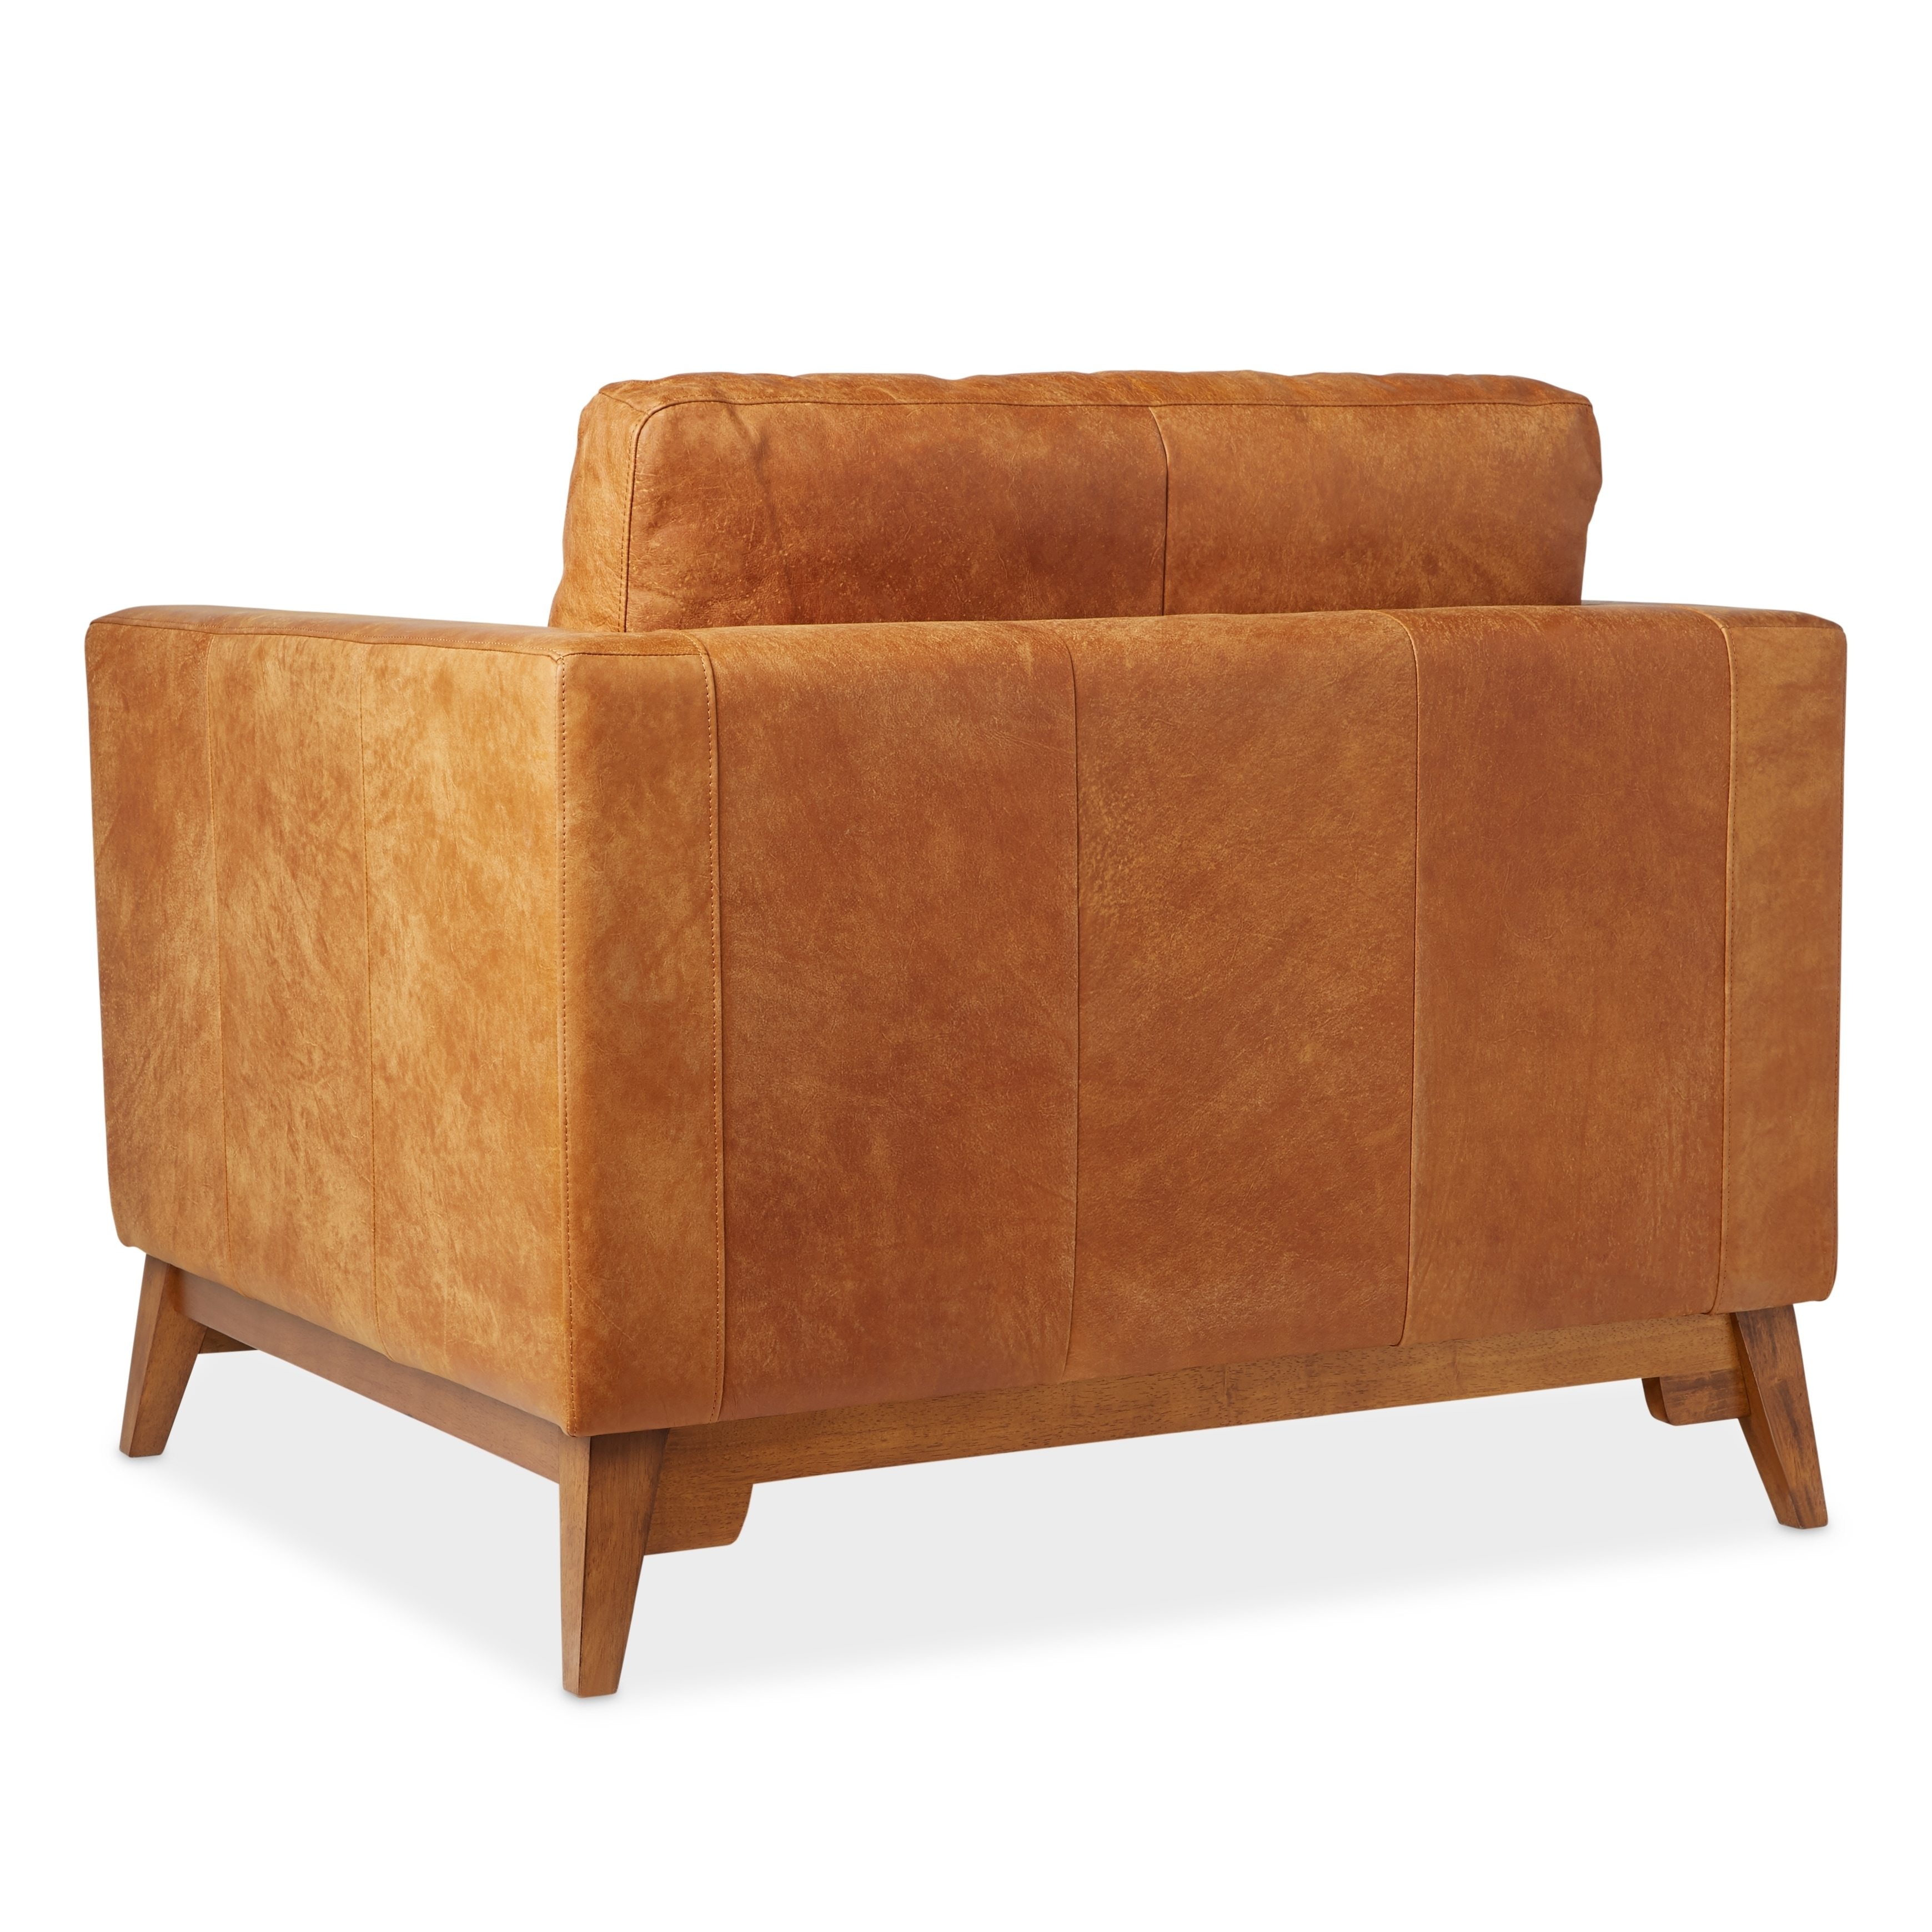 Shop Strick U0026 Bolton Filmore Oversized Tan Italian Leather Club Chair   On  Sale   Free Shipping Today   Overstock   8840196